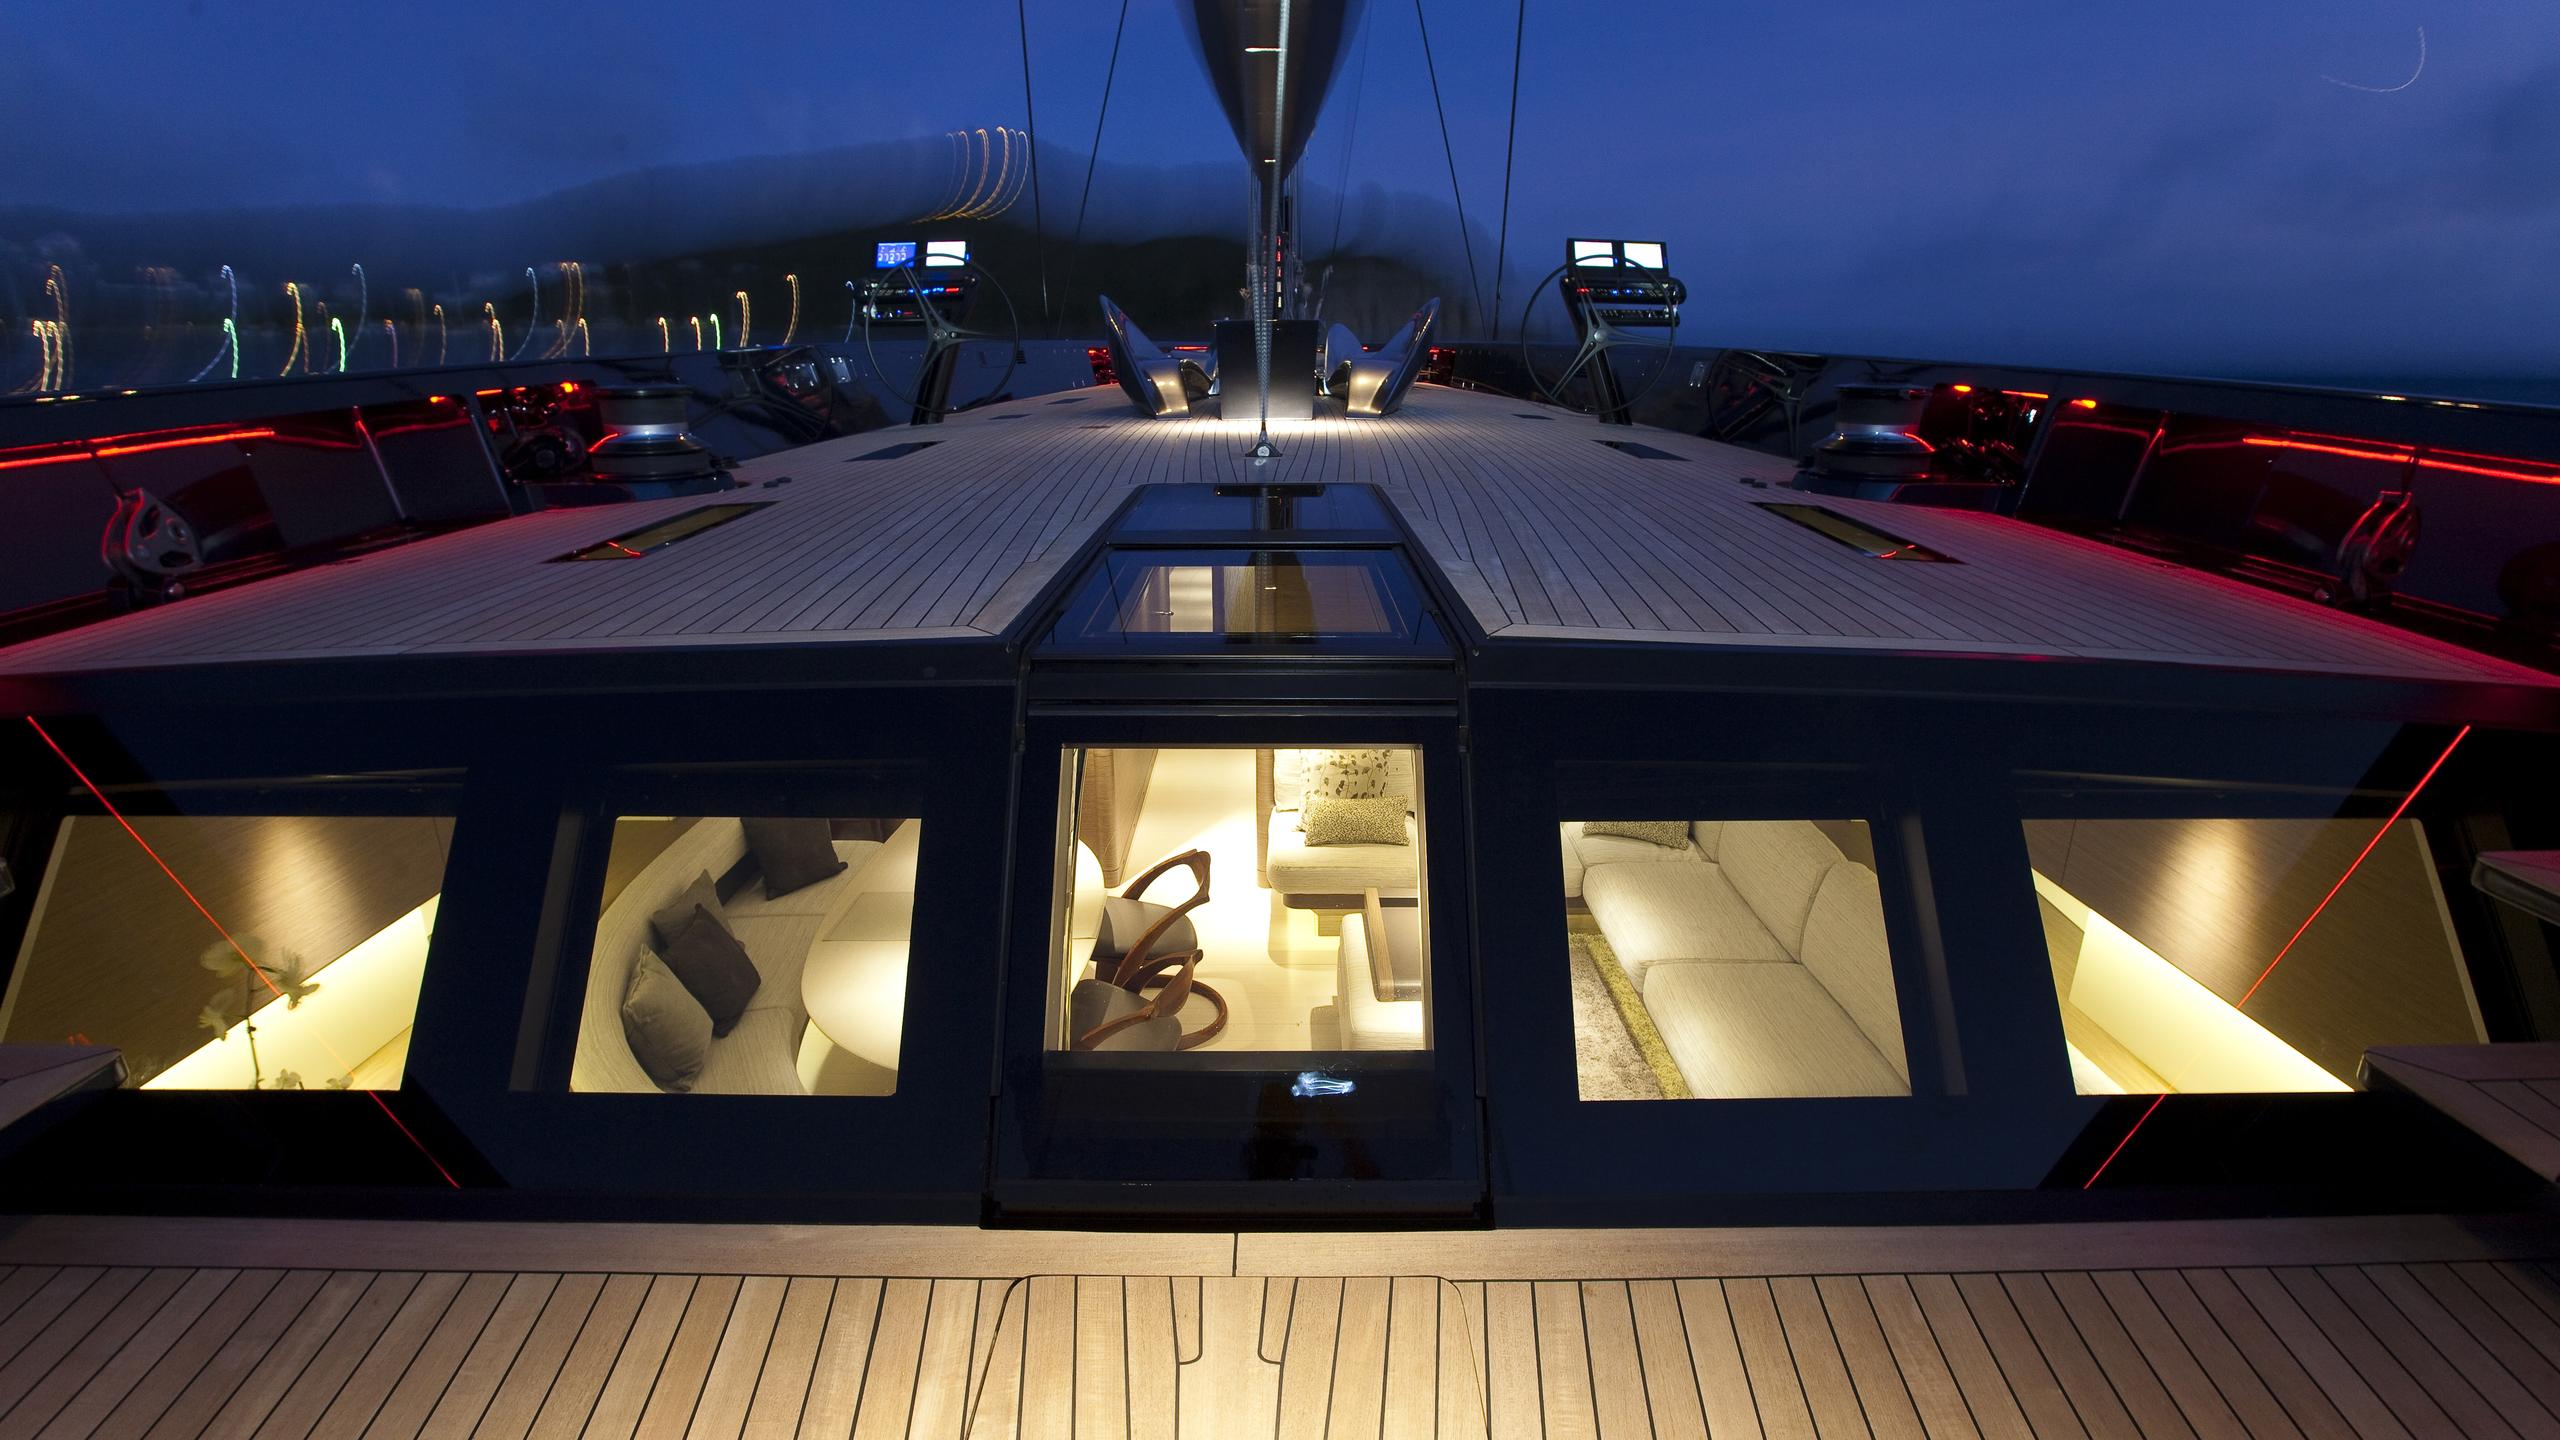 black sails angels share dream sailing yacht wally 40m 2009 aft deck by night